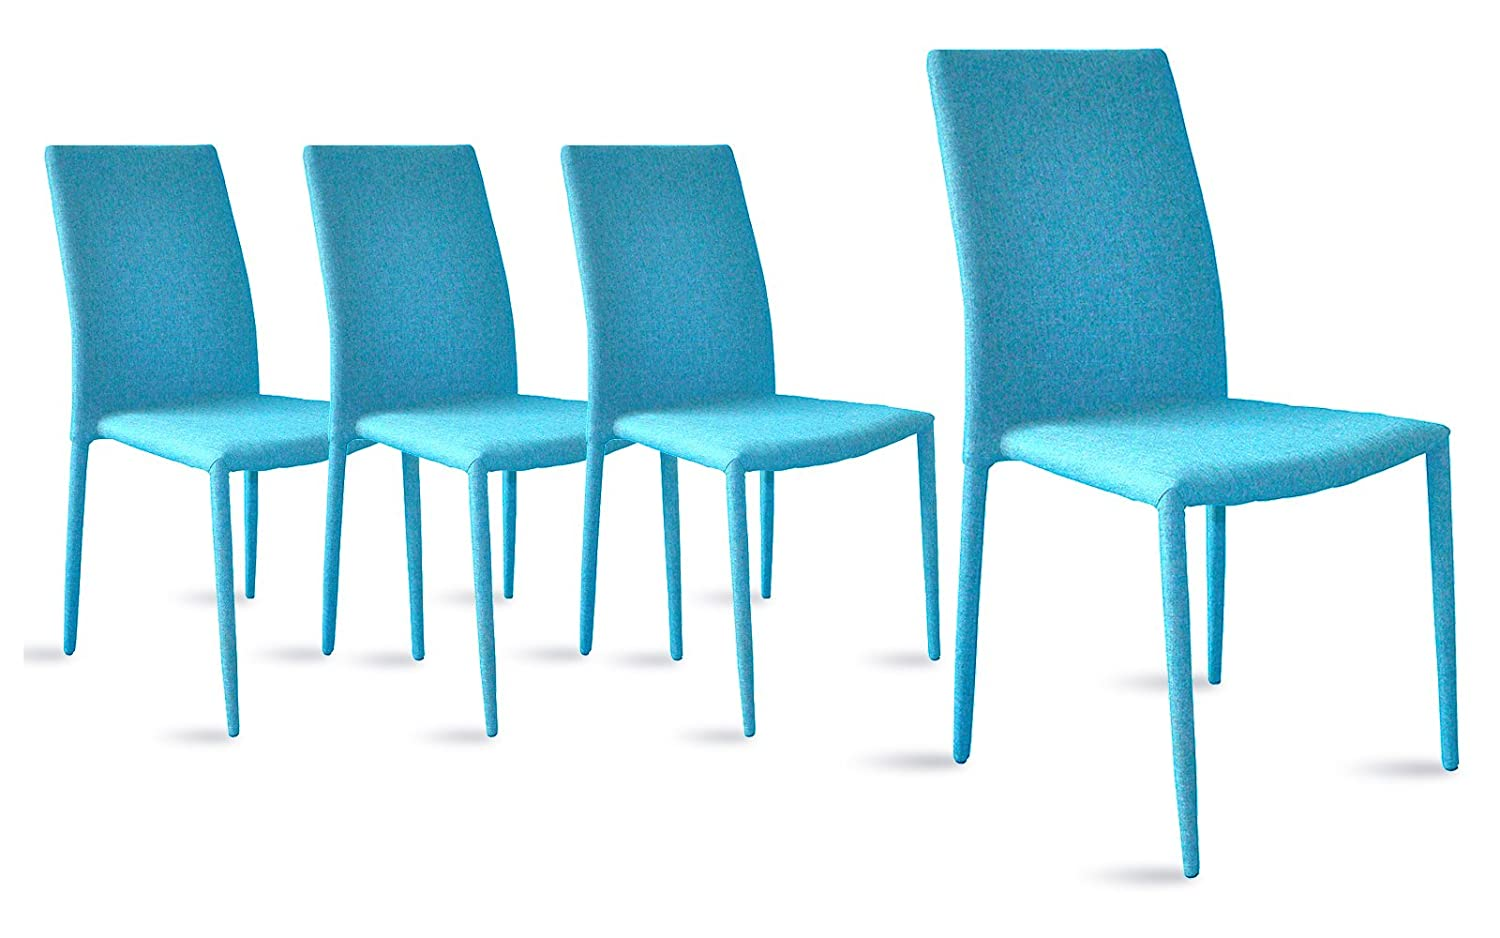 Dining Room Chairs Set of 4, Fabric Chair for Living Room 4 Pieces (Blue)